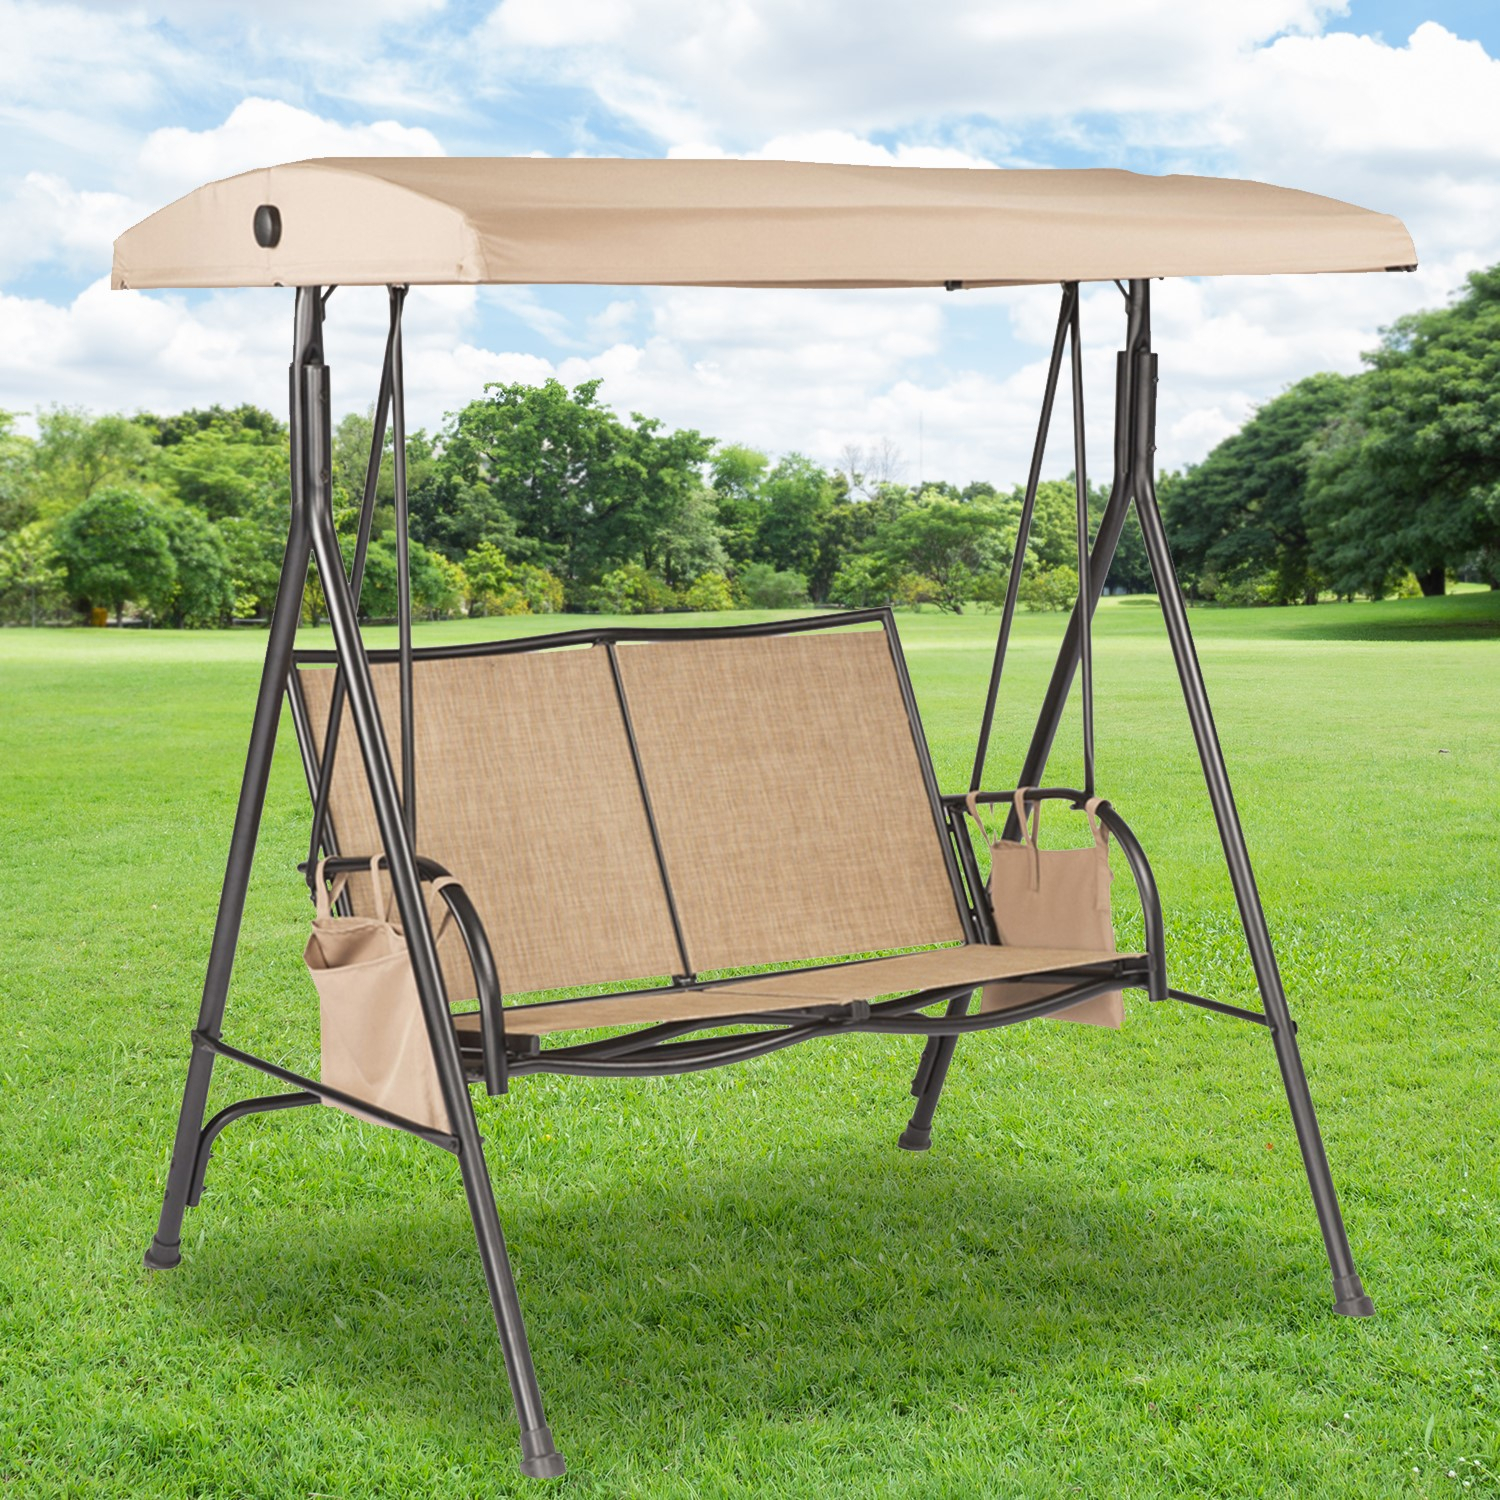 Replacement Swing Canopies For Lowe's Swings – Garden Winds Throughout 2 Person Black Steel Outdoor Swings (Image 20 of 25)